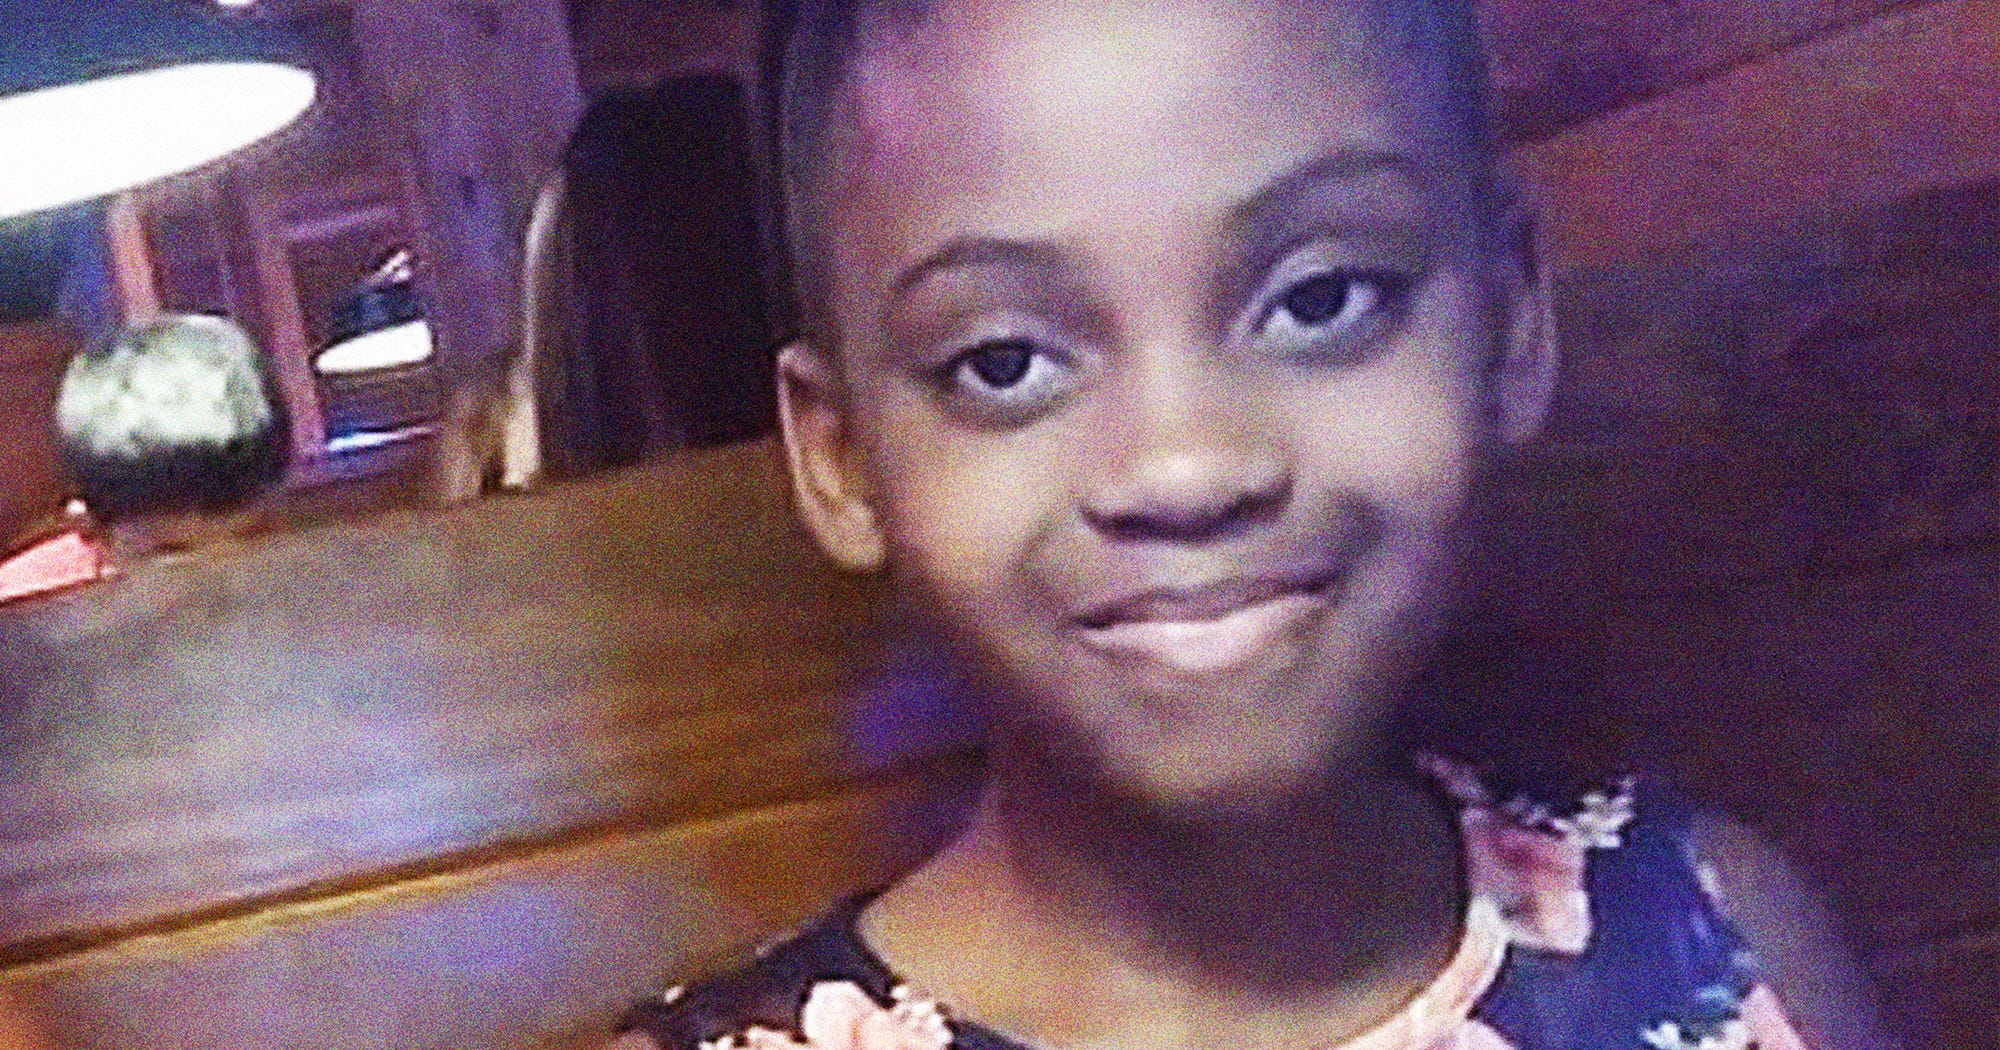 Family Says 9-Year-Old McKenzie Adams Died By Suicide After Being Bullied